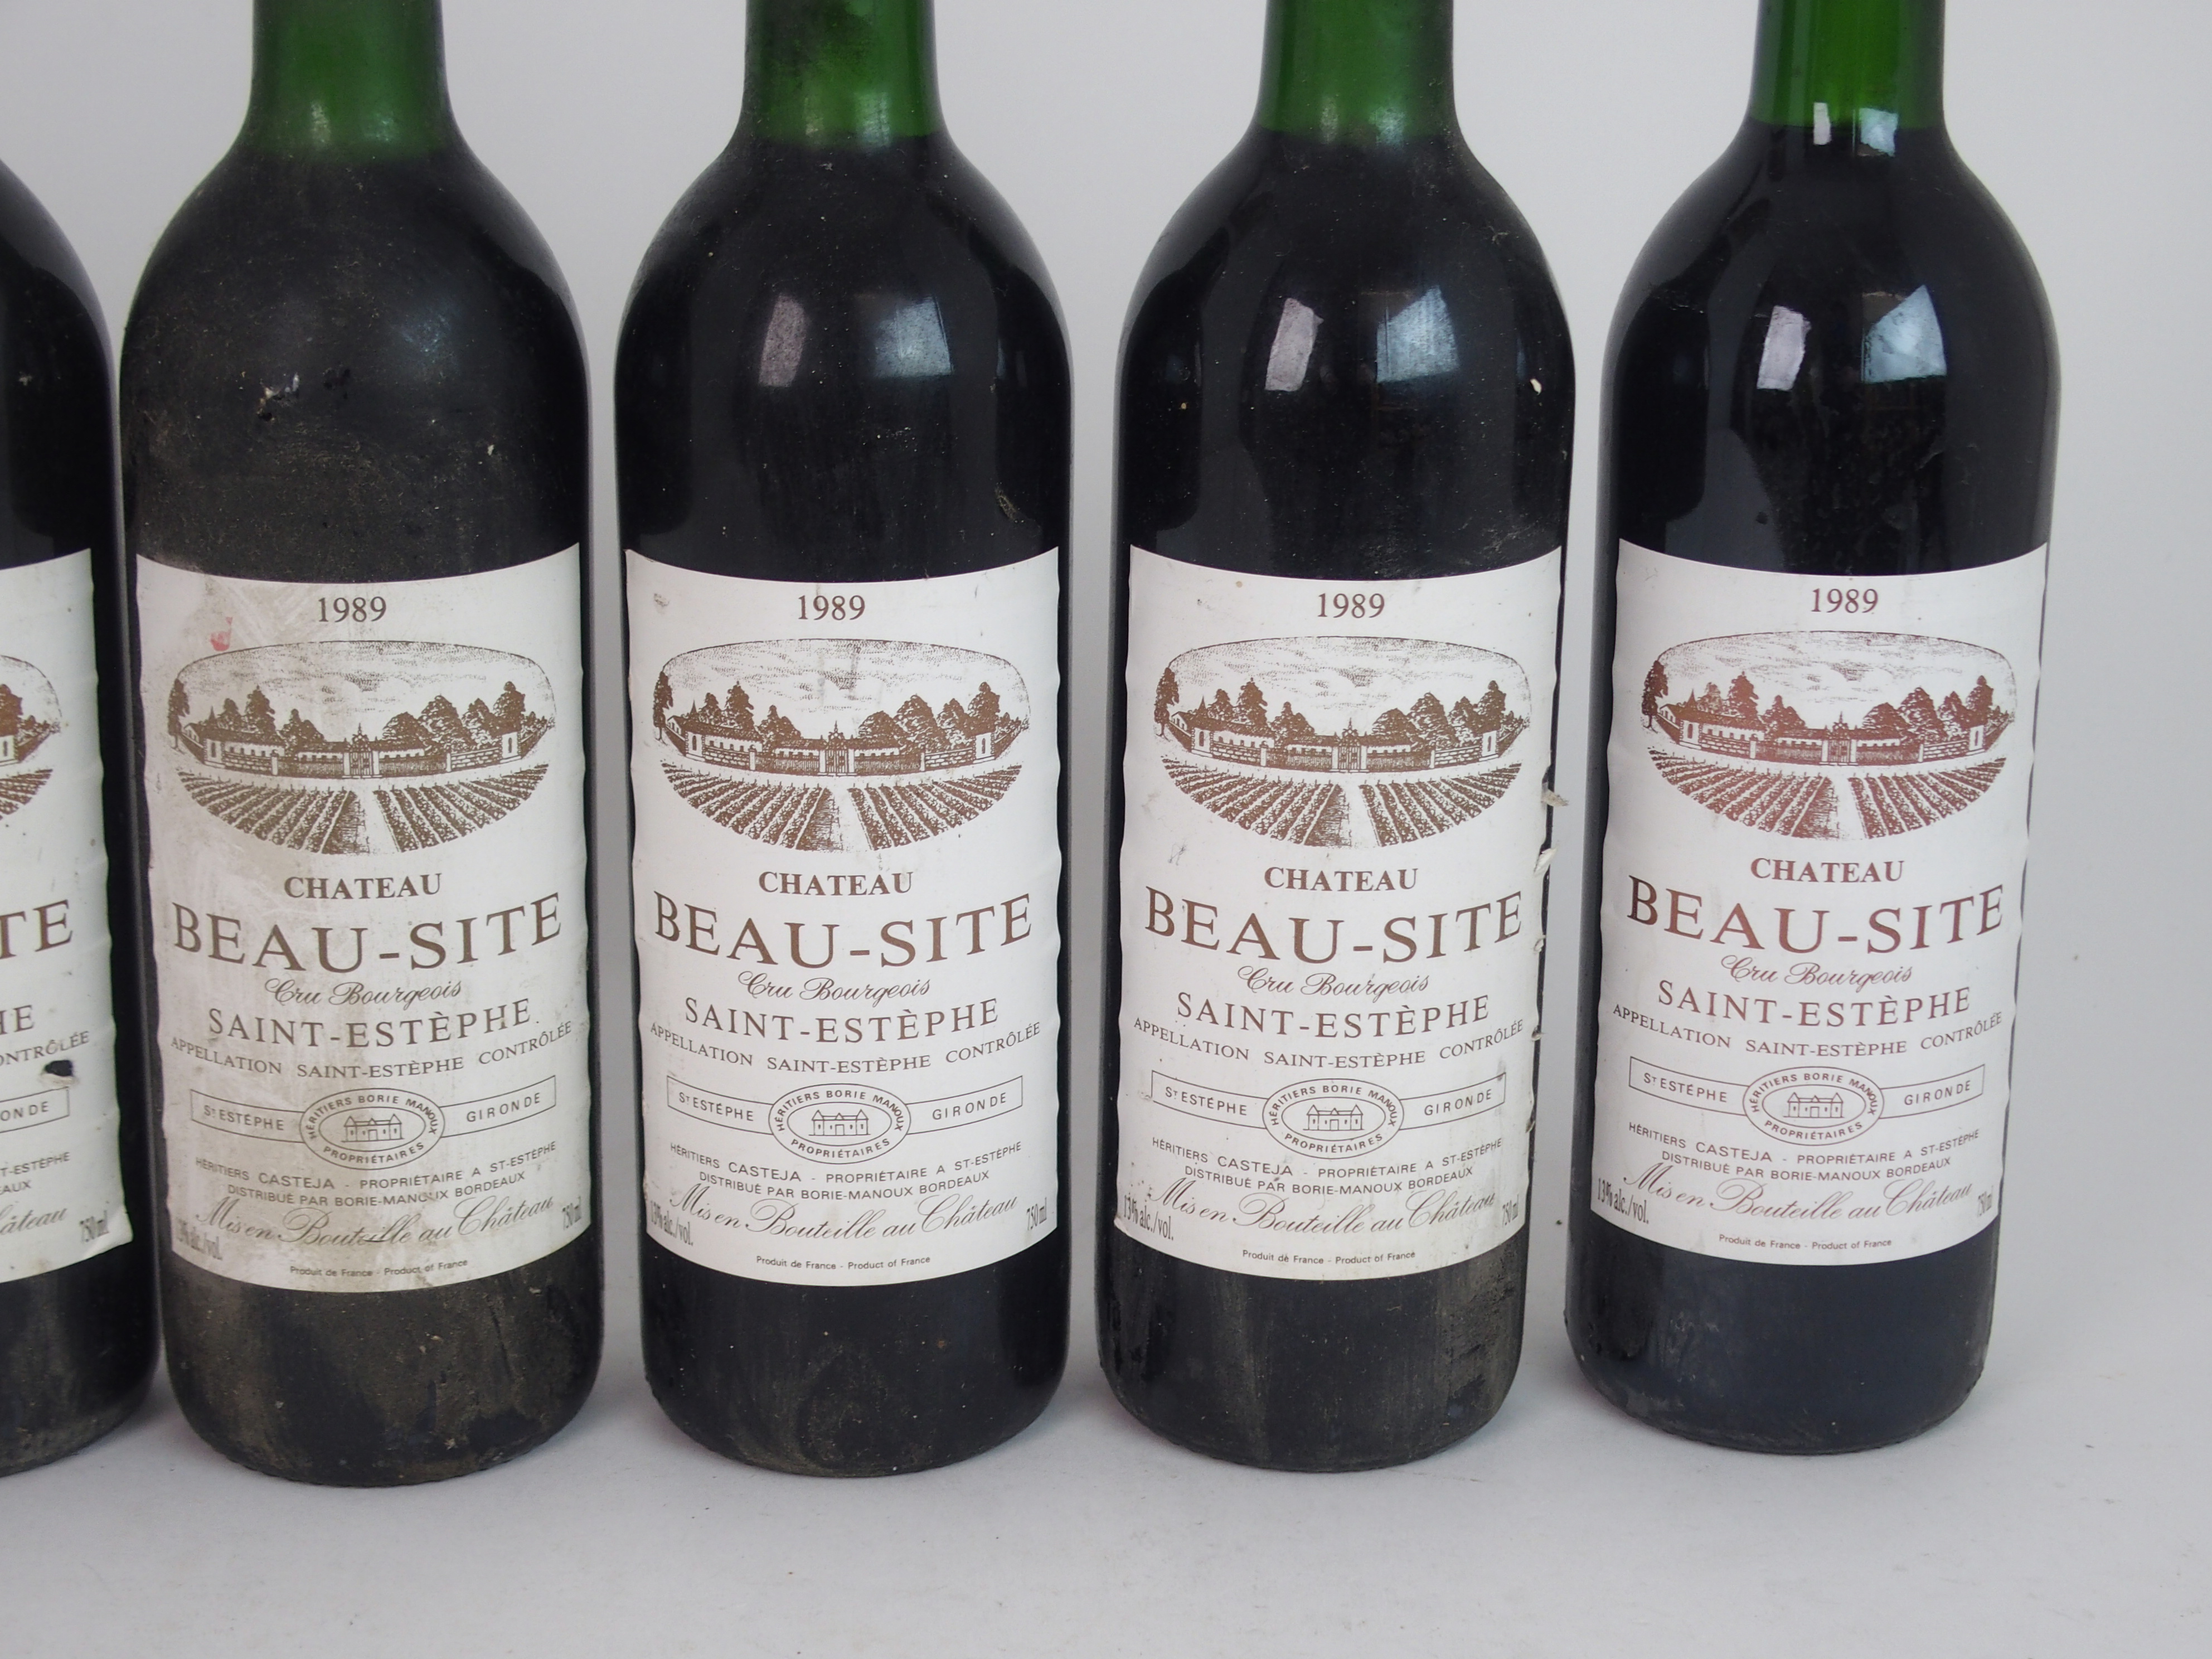 ELEVEN BOTTLES OF CHATEAU BEAU-SITE, SAINT ESTEPHE, 1989 13%vol, 750ml, labels stained and some torn - Image 4 of 8